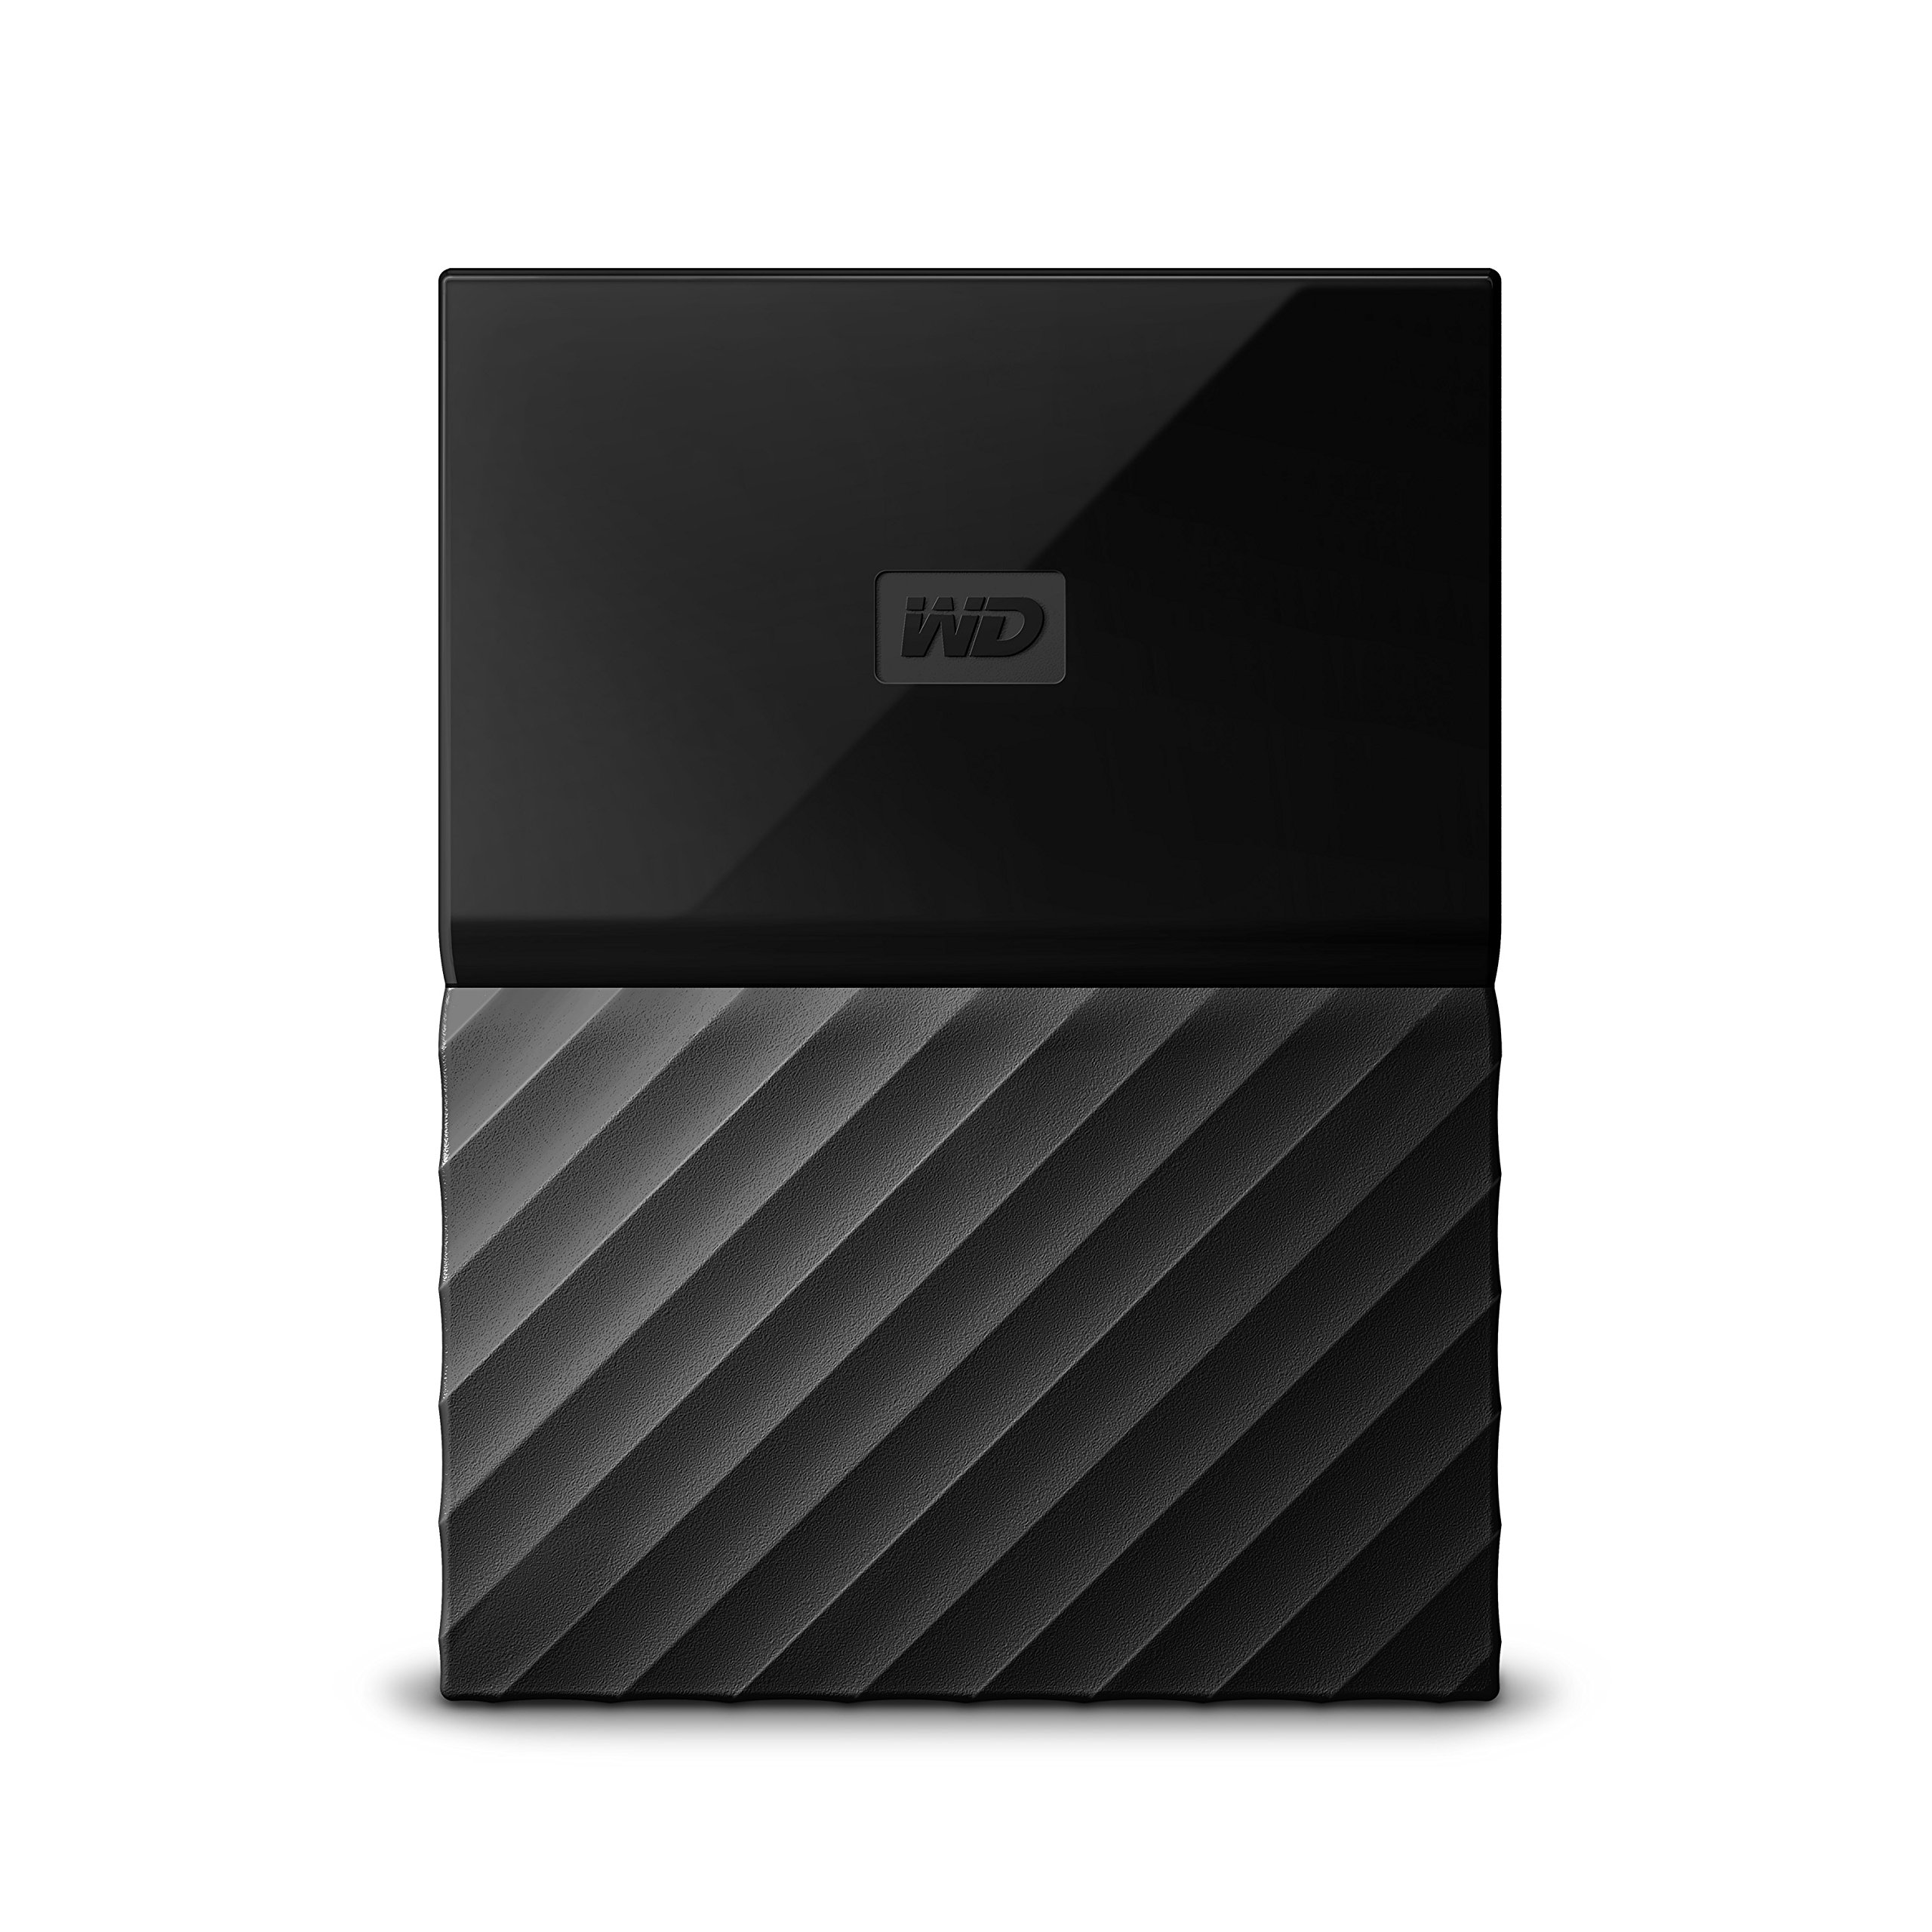 WD 2TB My Passport Game Storage for PS4 - USB 3.0 - WDBZGE0020BBK-NESN